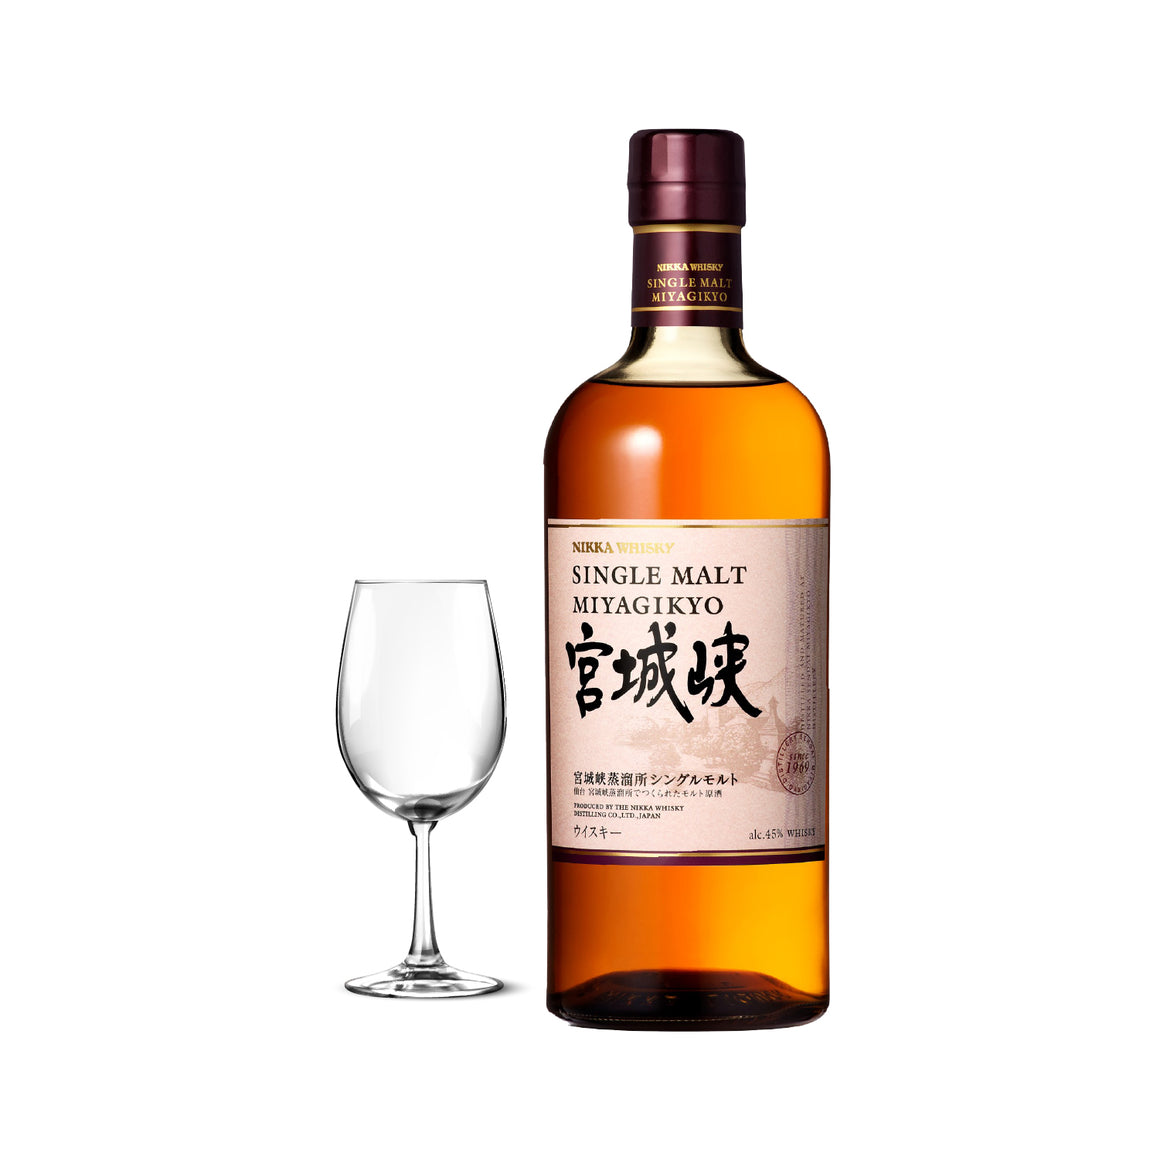 NIKKA MIYAGIKYO SINGLE MALT *free 1 Nikka Tasting Glass